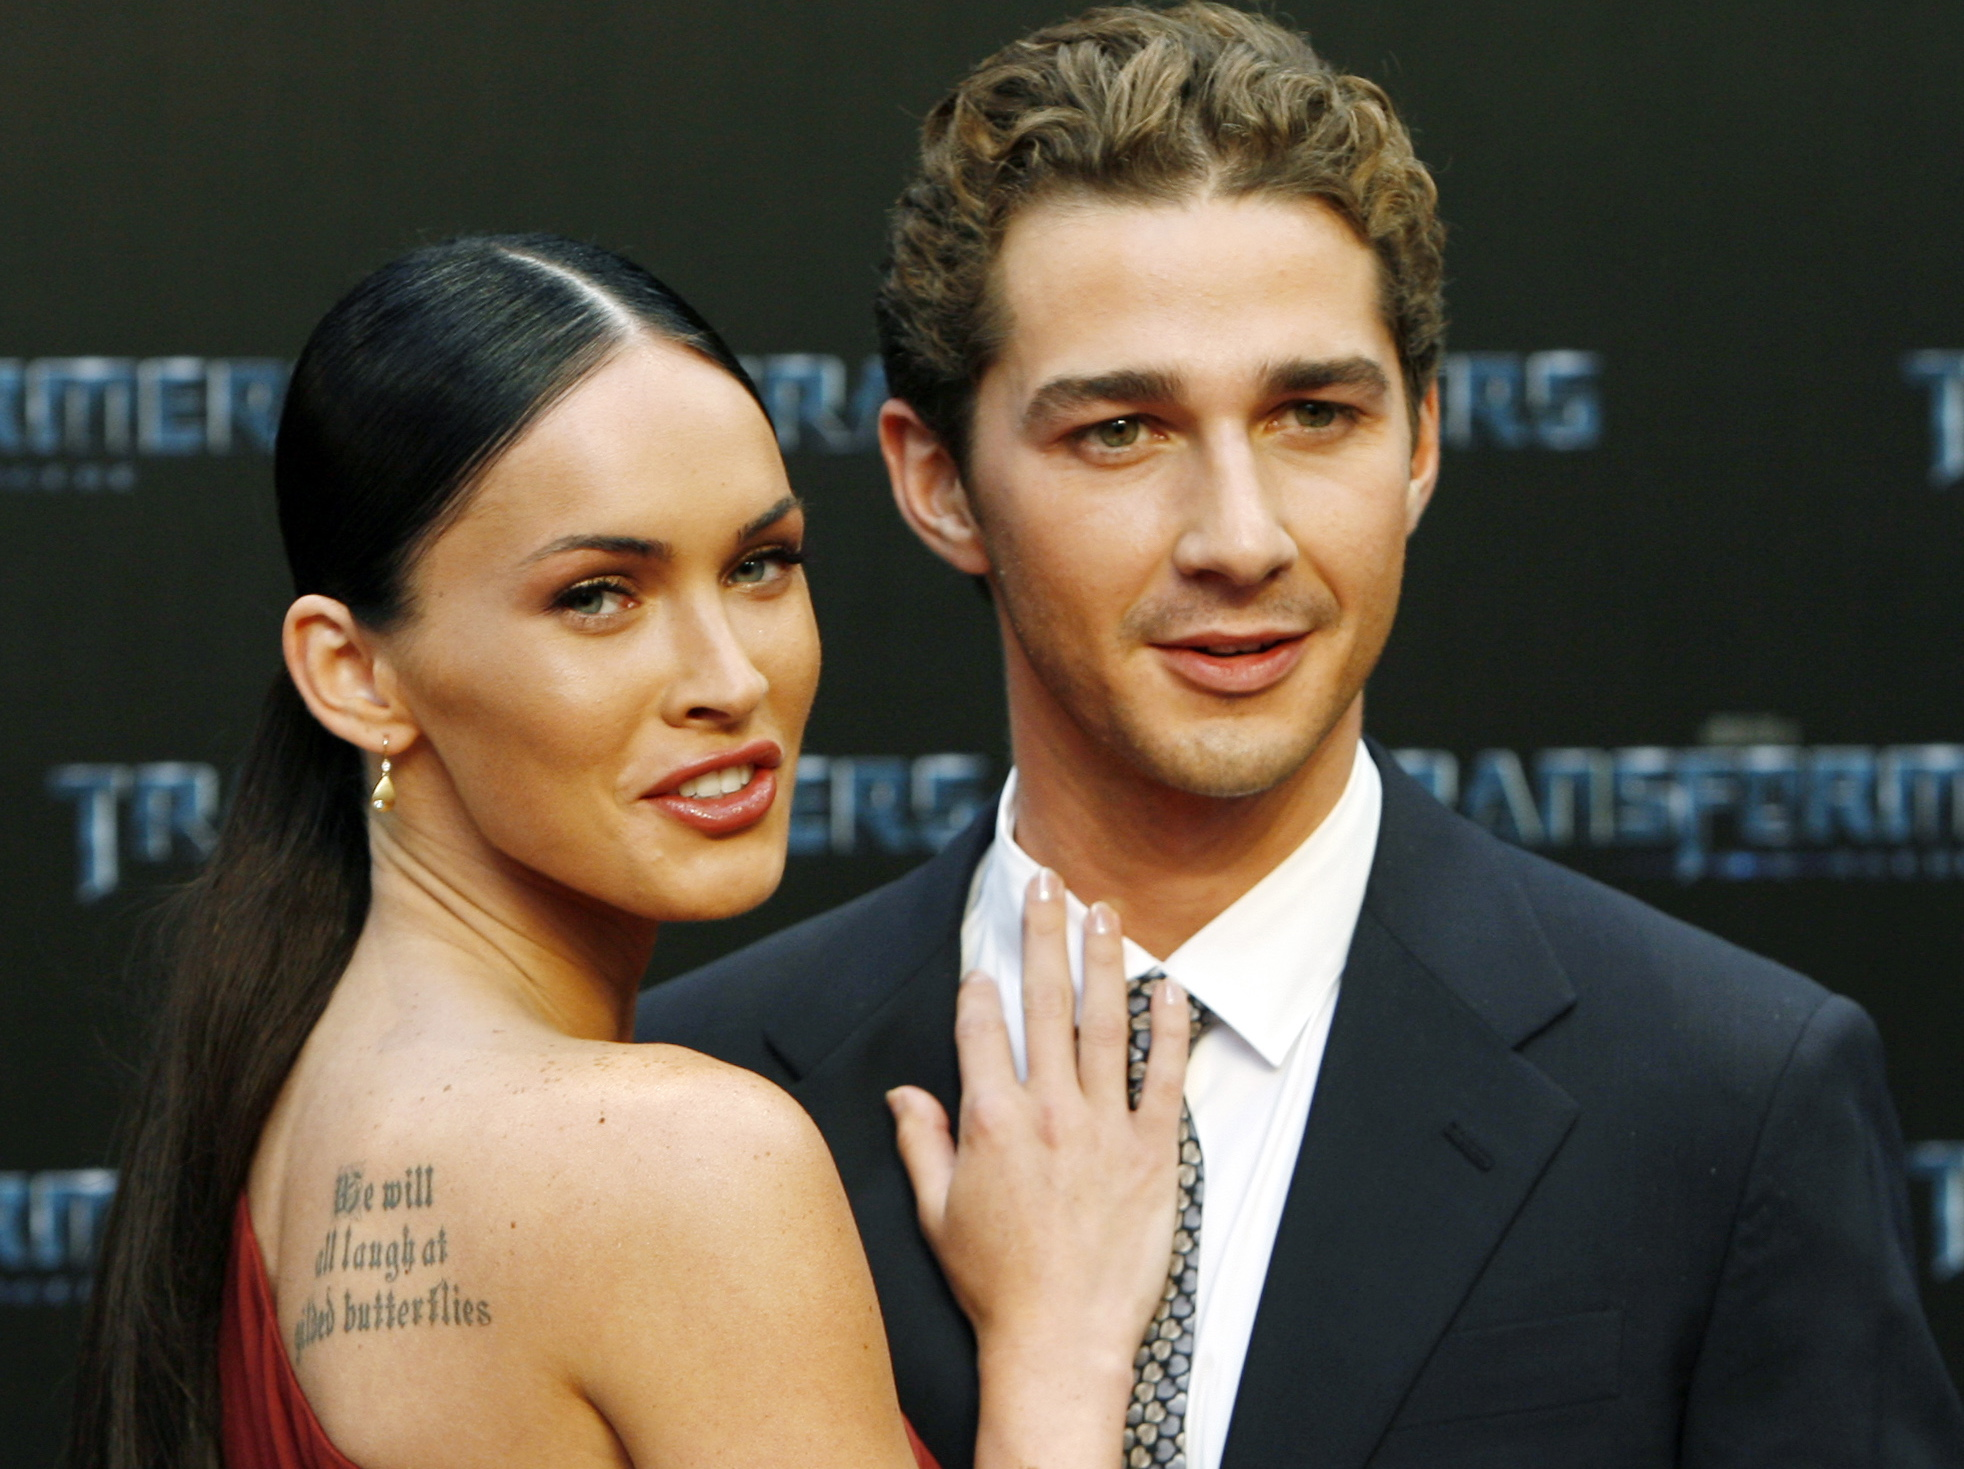 3. Shia LaBeouf i Megan Fox (